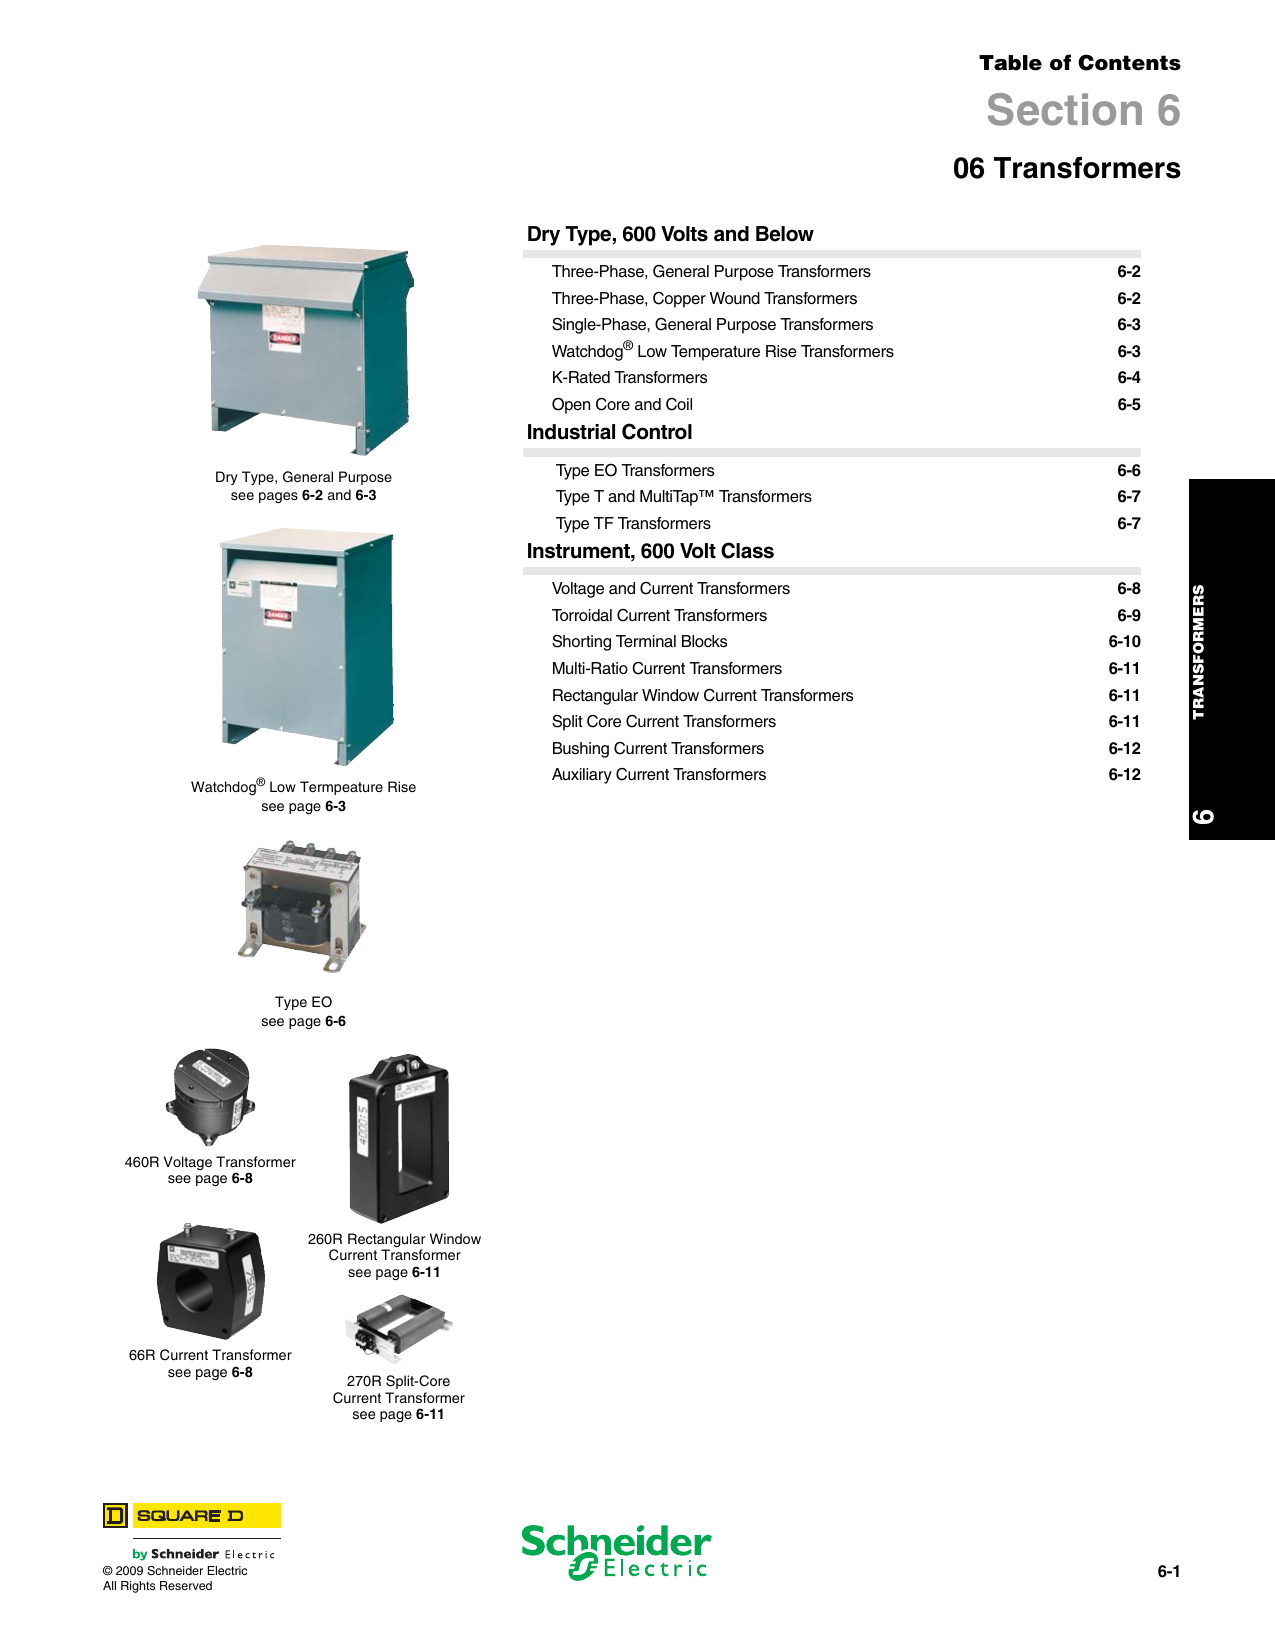 Diagram D Wiring Square Transformer 75t12h Electrical Diagrams Dry Type Section 6 Schneider Electric